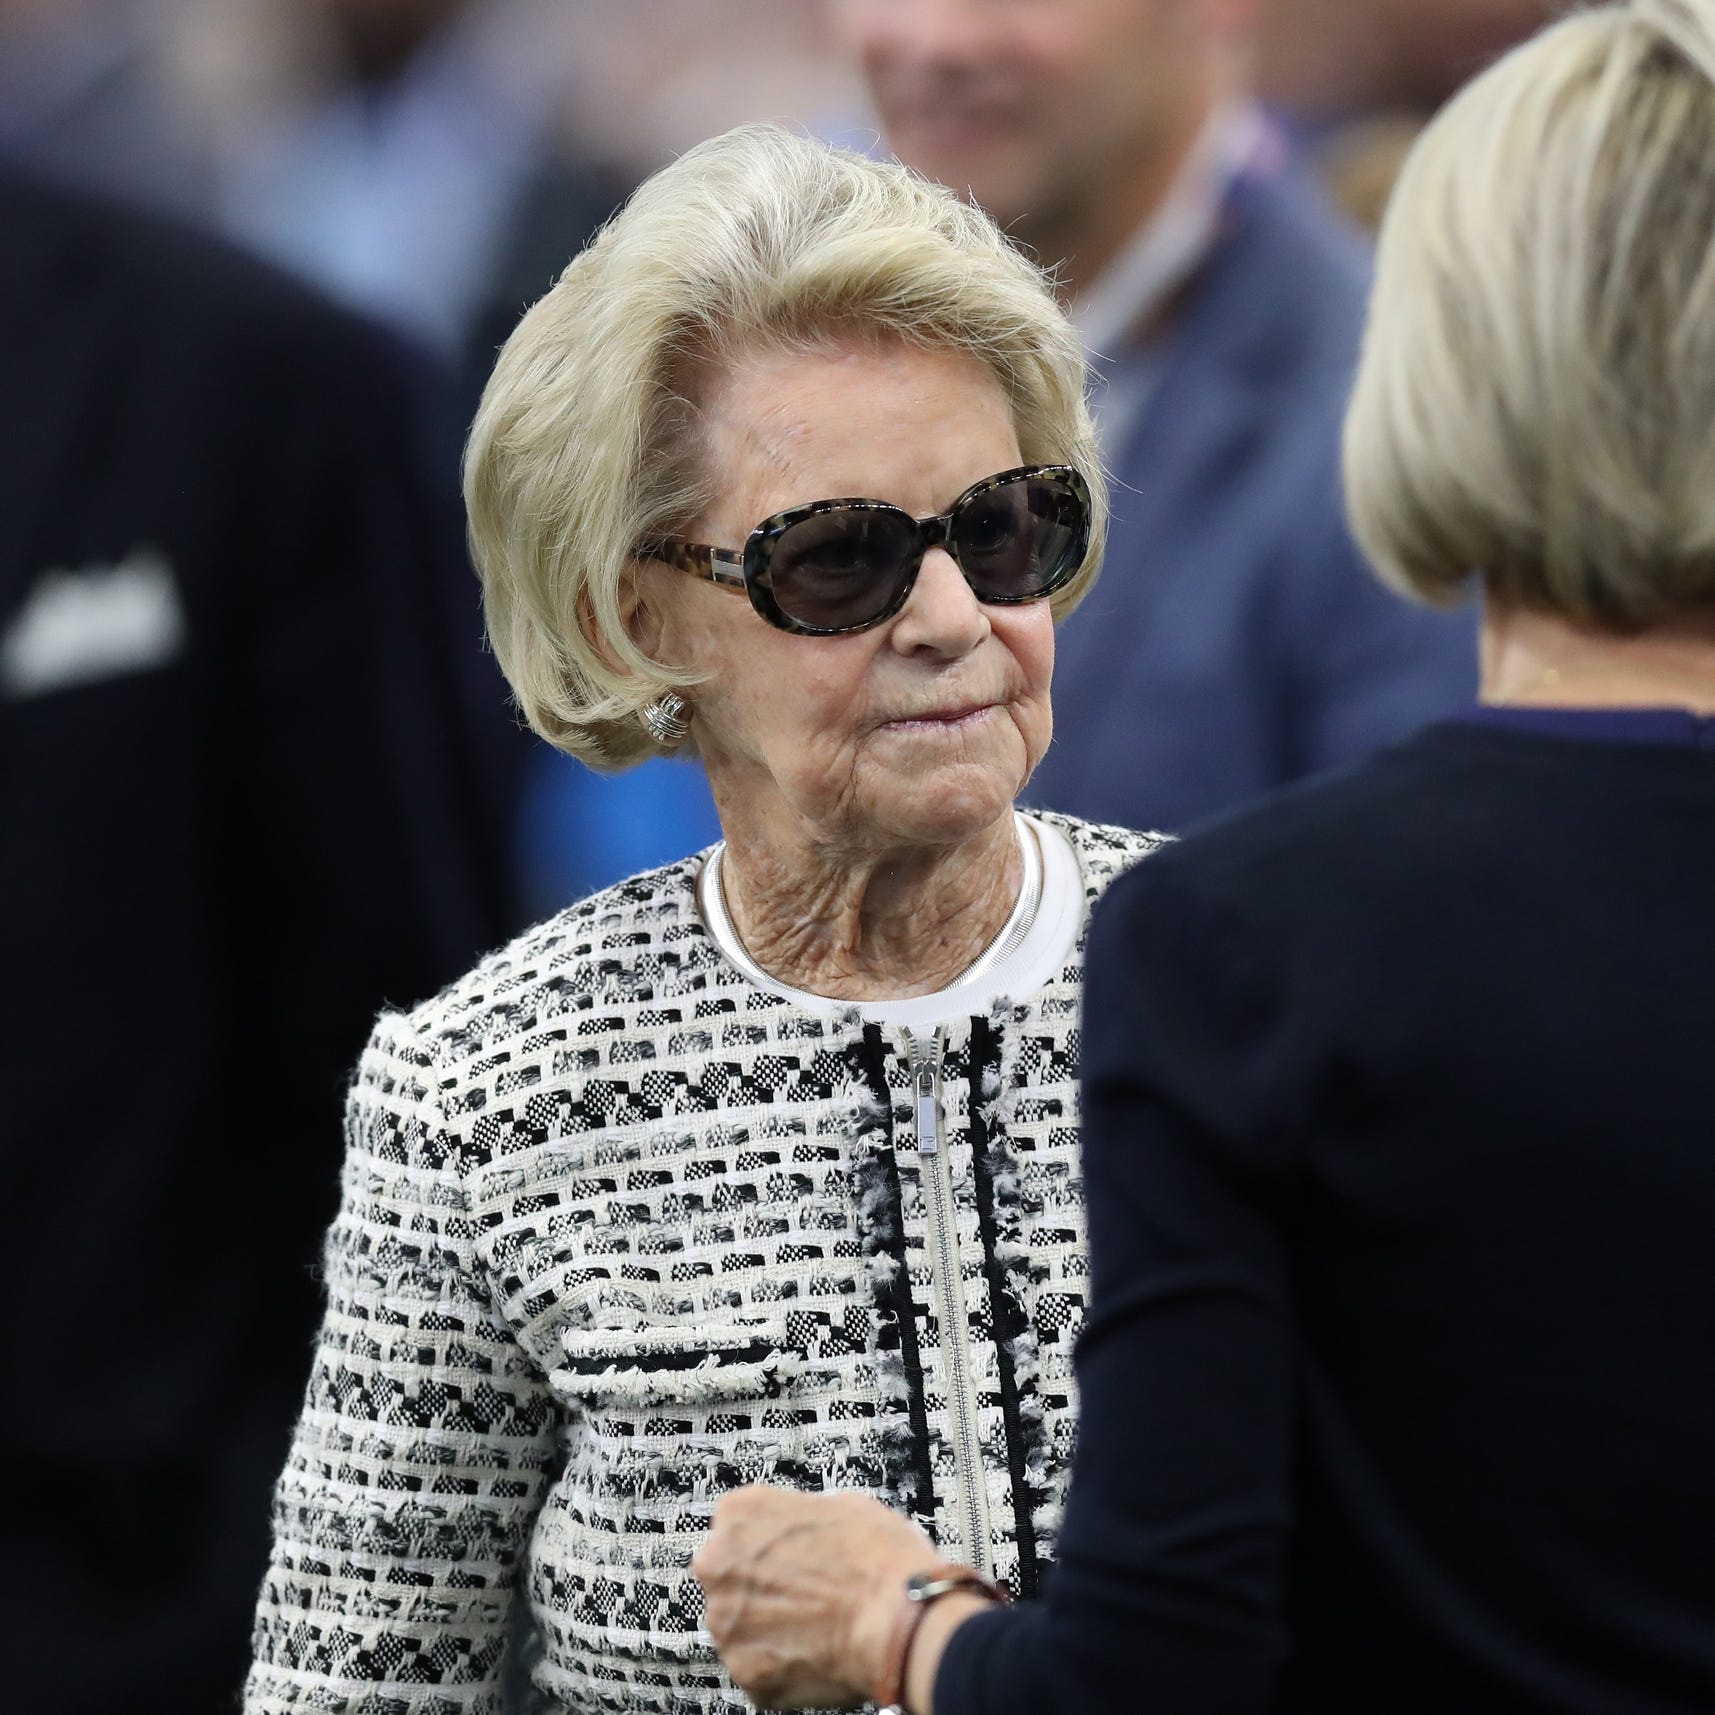 Detroit Lions' Martha Ford has 'a lot less patience' for mediocrity than husband